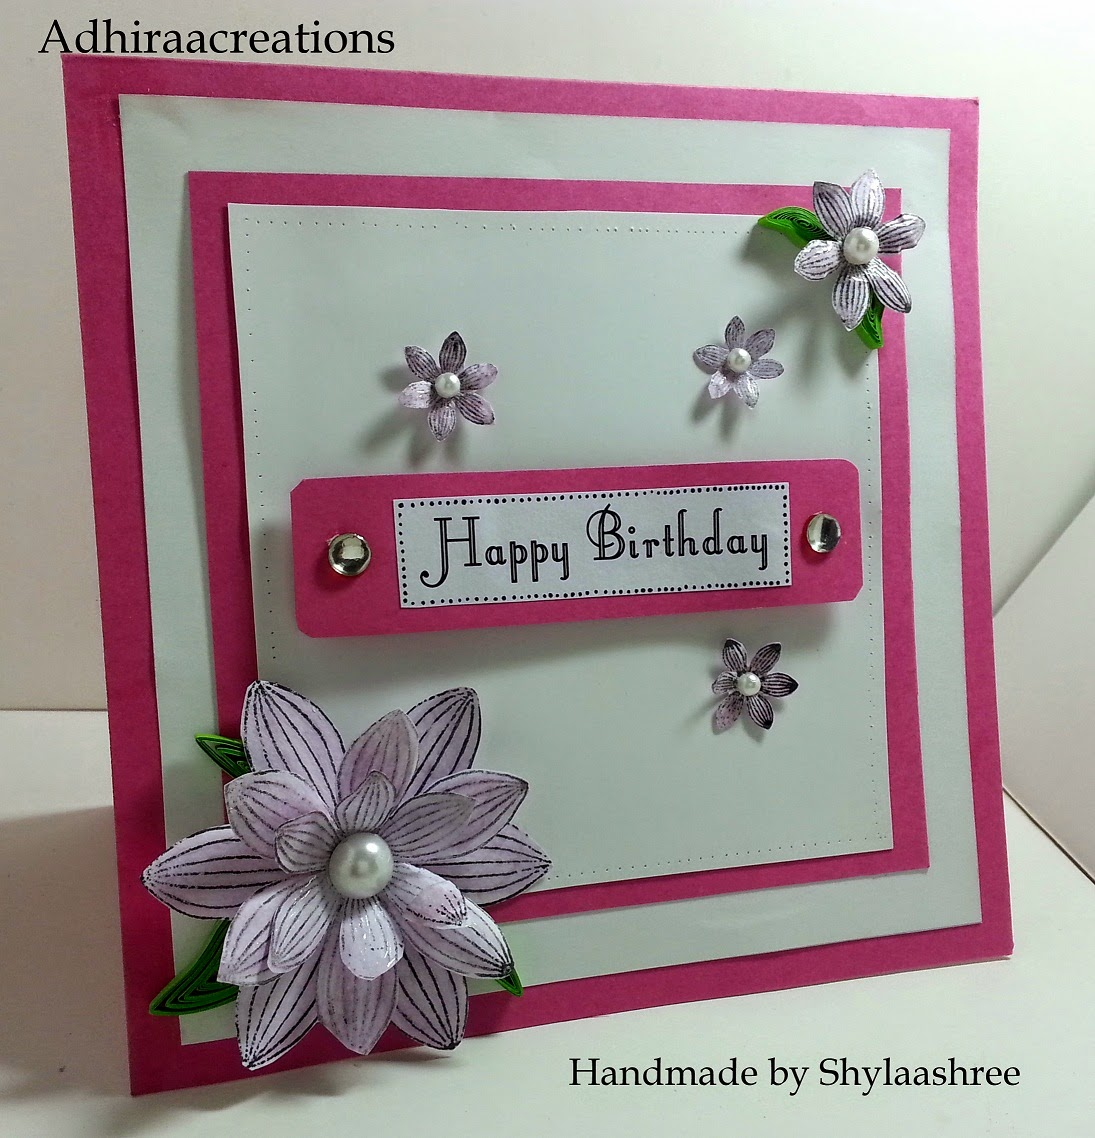 http://adhiraacreations.blogspot.com/2015/01/floral-birthday.html